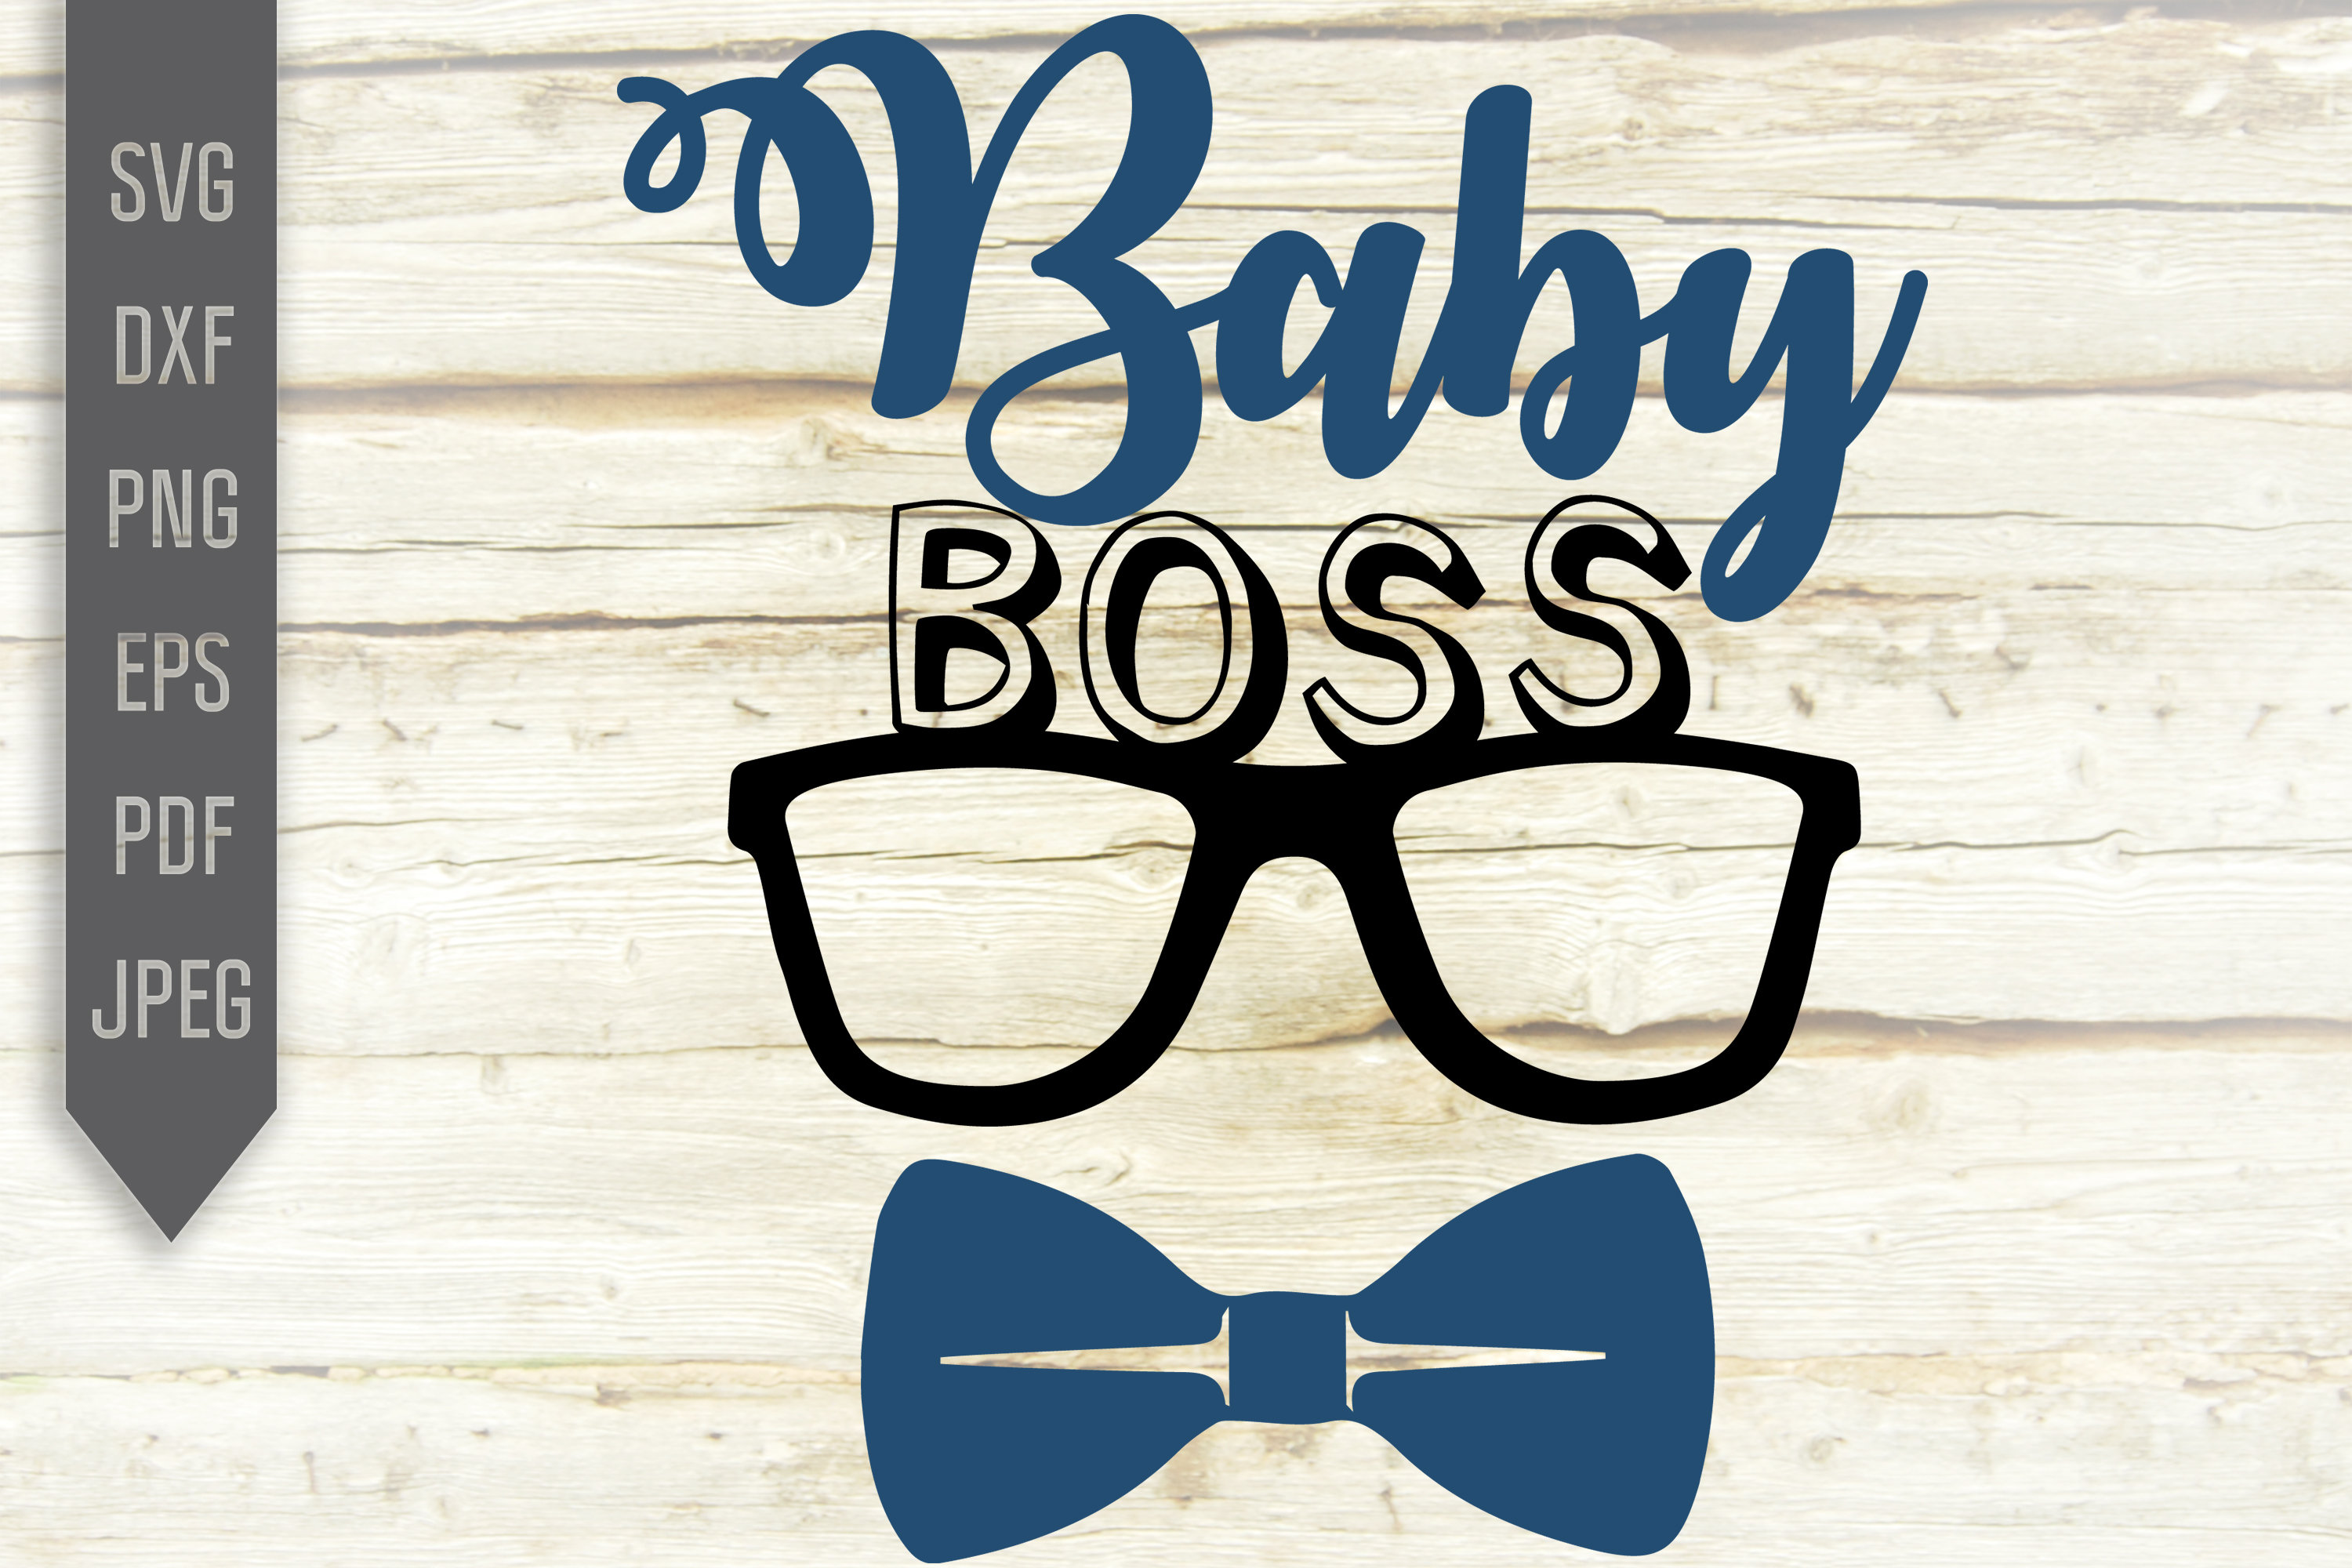 Baby Boss Little Kid Shirt Design Graphic By Svglaboratory